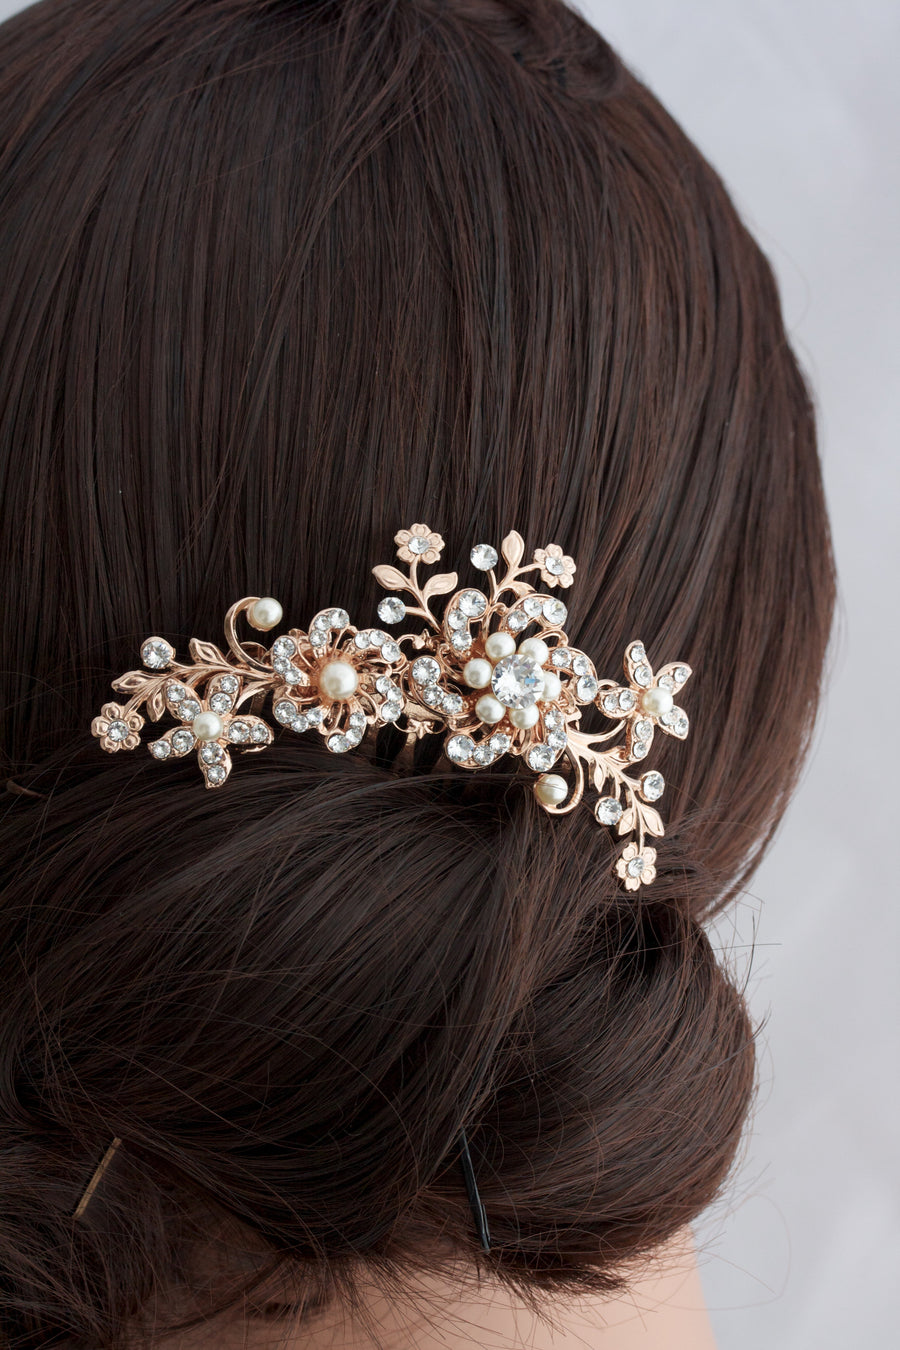 Hair accessories by Sabine Samuel